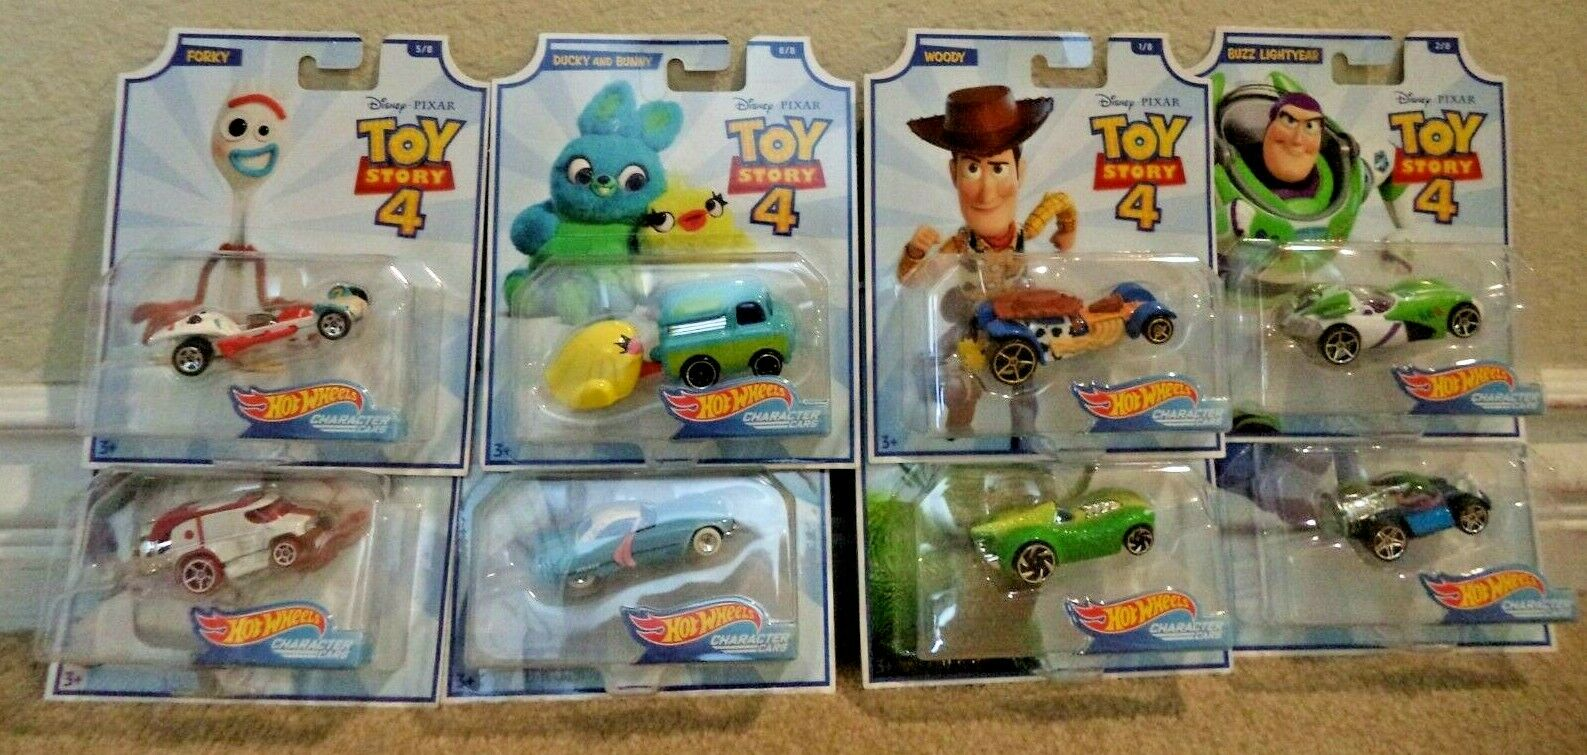 HOT WHEELS TOY STORY 4 WAVE 1 & 2  SET OF 8 DUCKY & BUNNY BO PEEP DUKE NEW